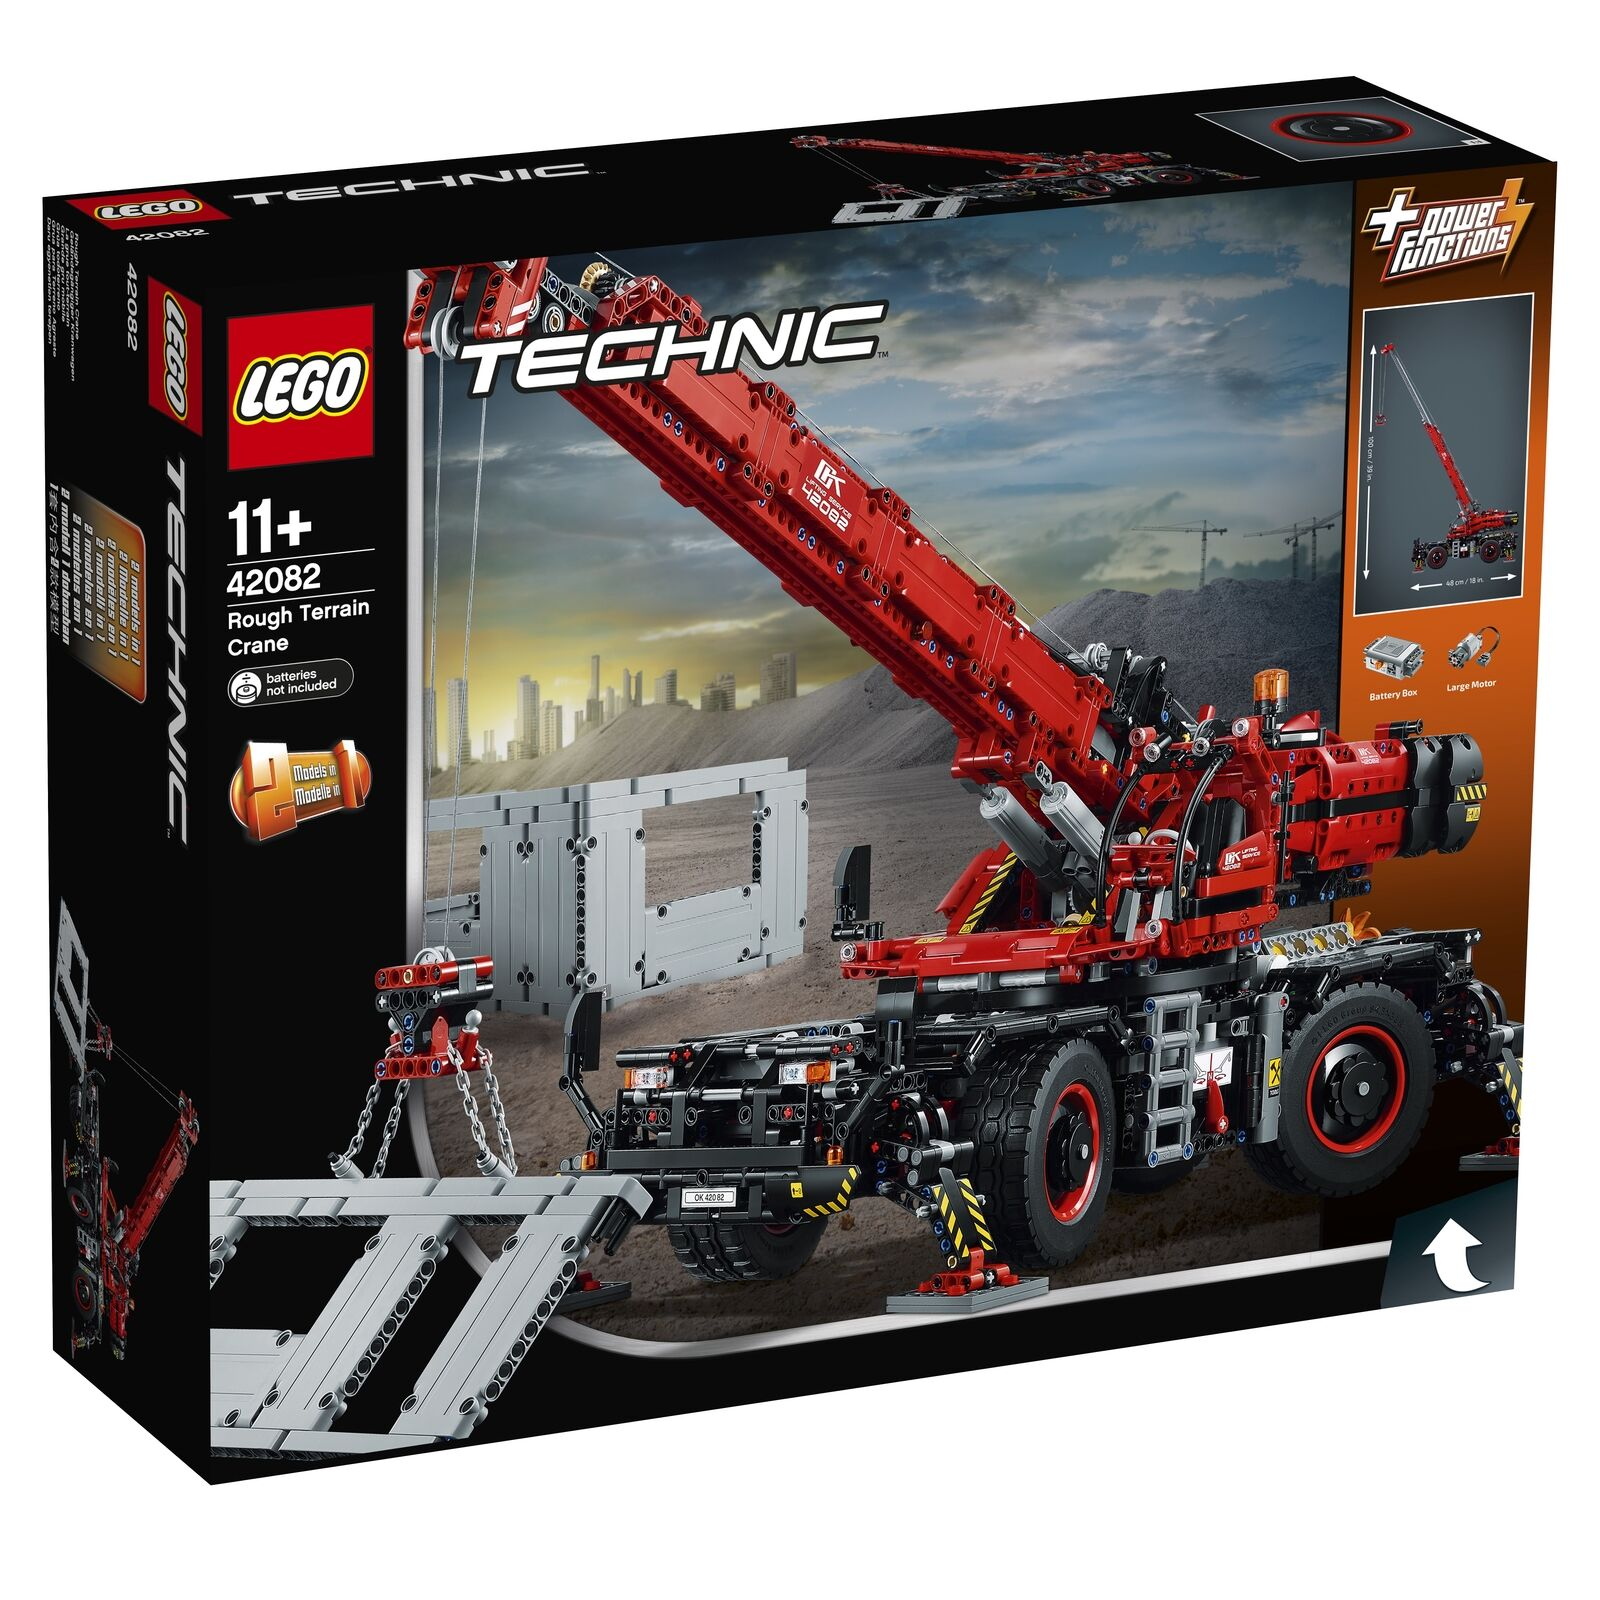 Lego Technic Rough Terrain Crane (42082) with FREE 1 day delivery